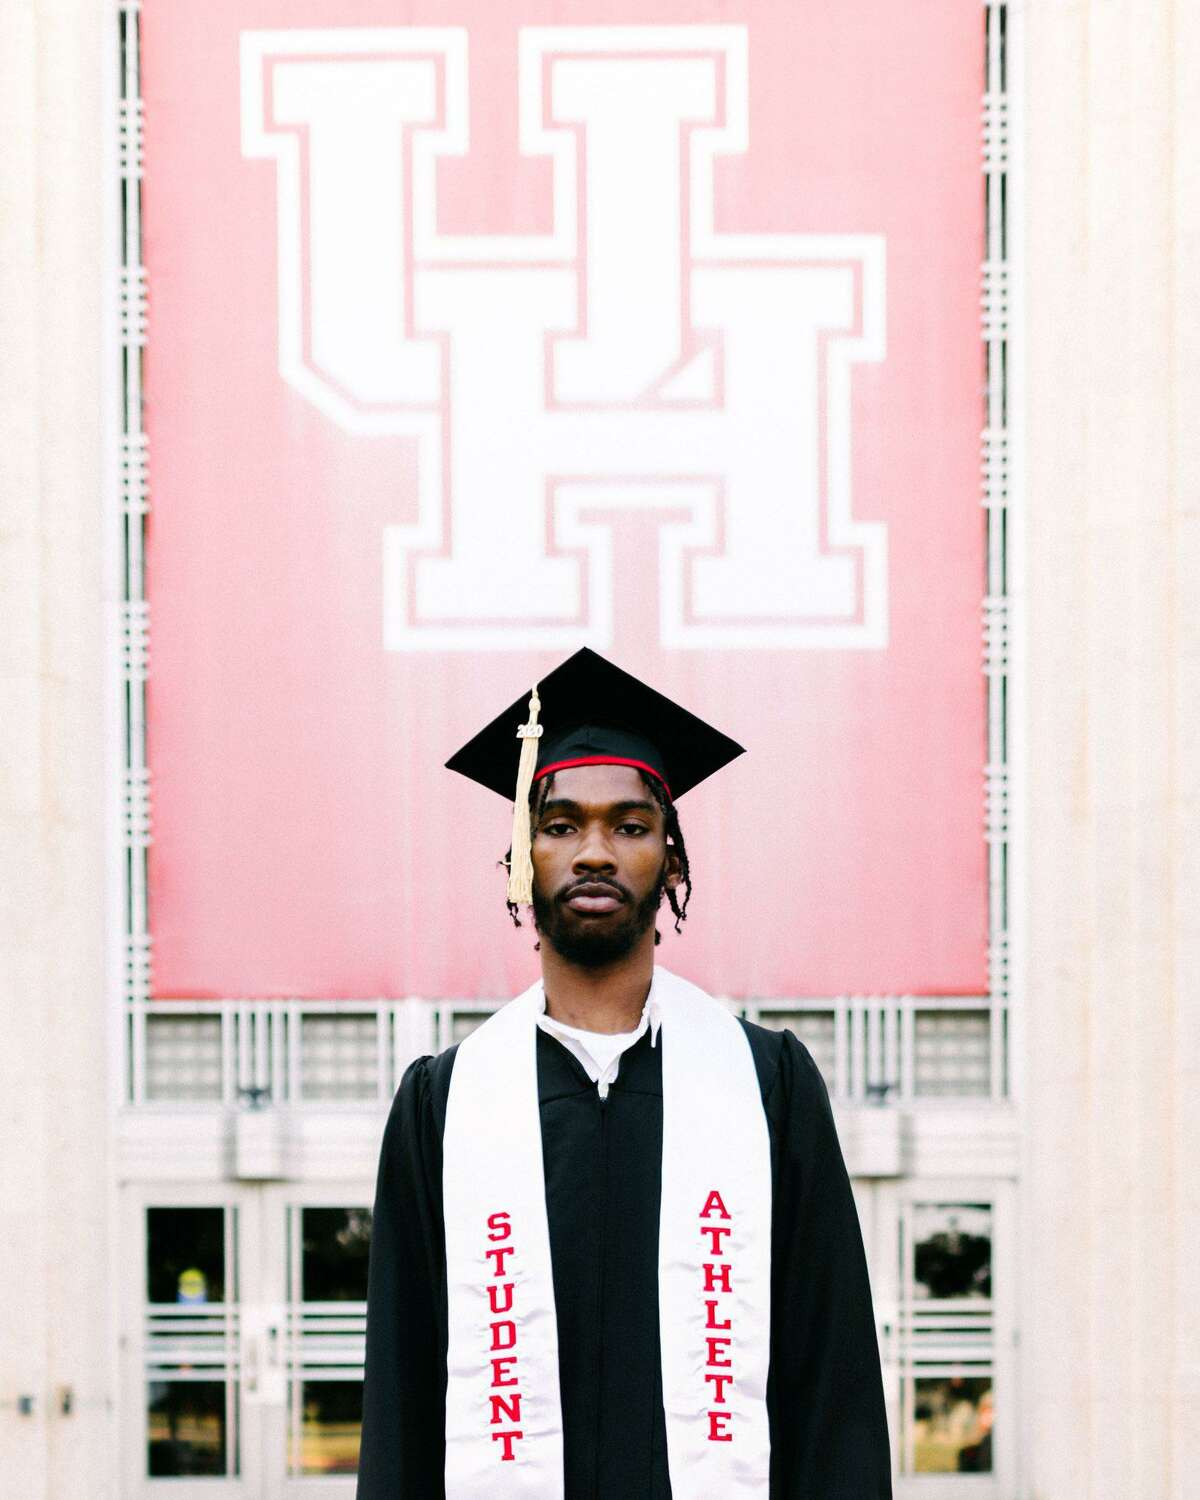 UH basketball player DeJon Jarreau graduated on Friday to become the first person in his family to matriculate in college.